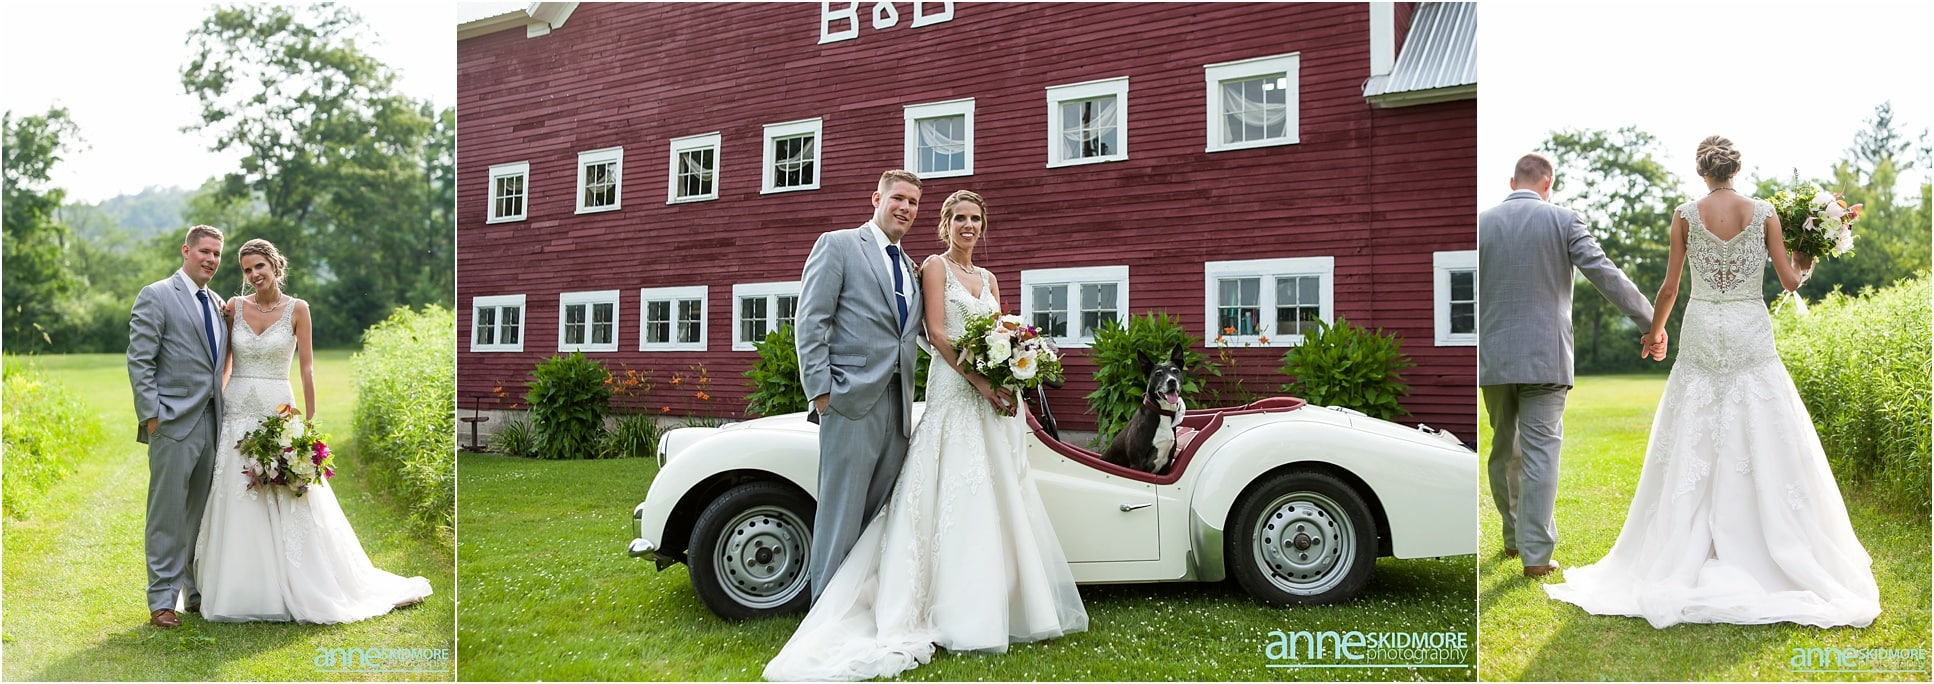 BISHOP_FARM_WEDDING__043